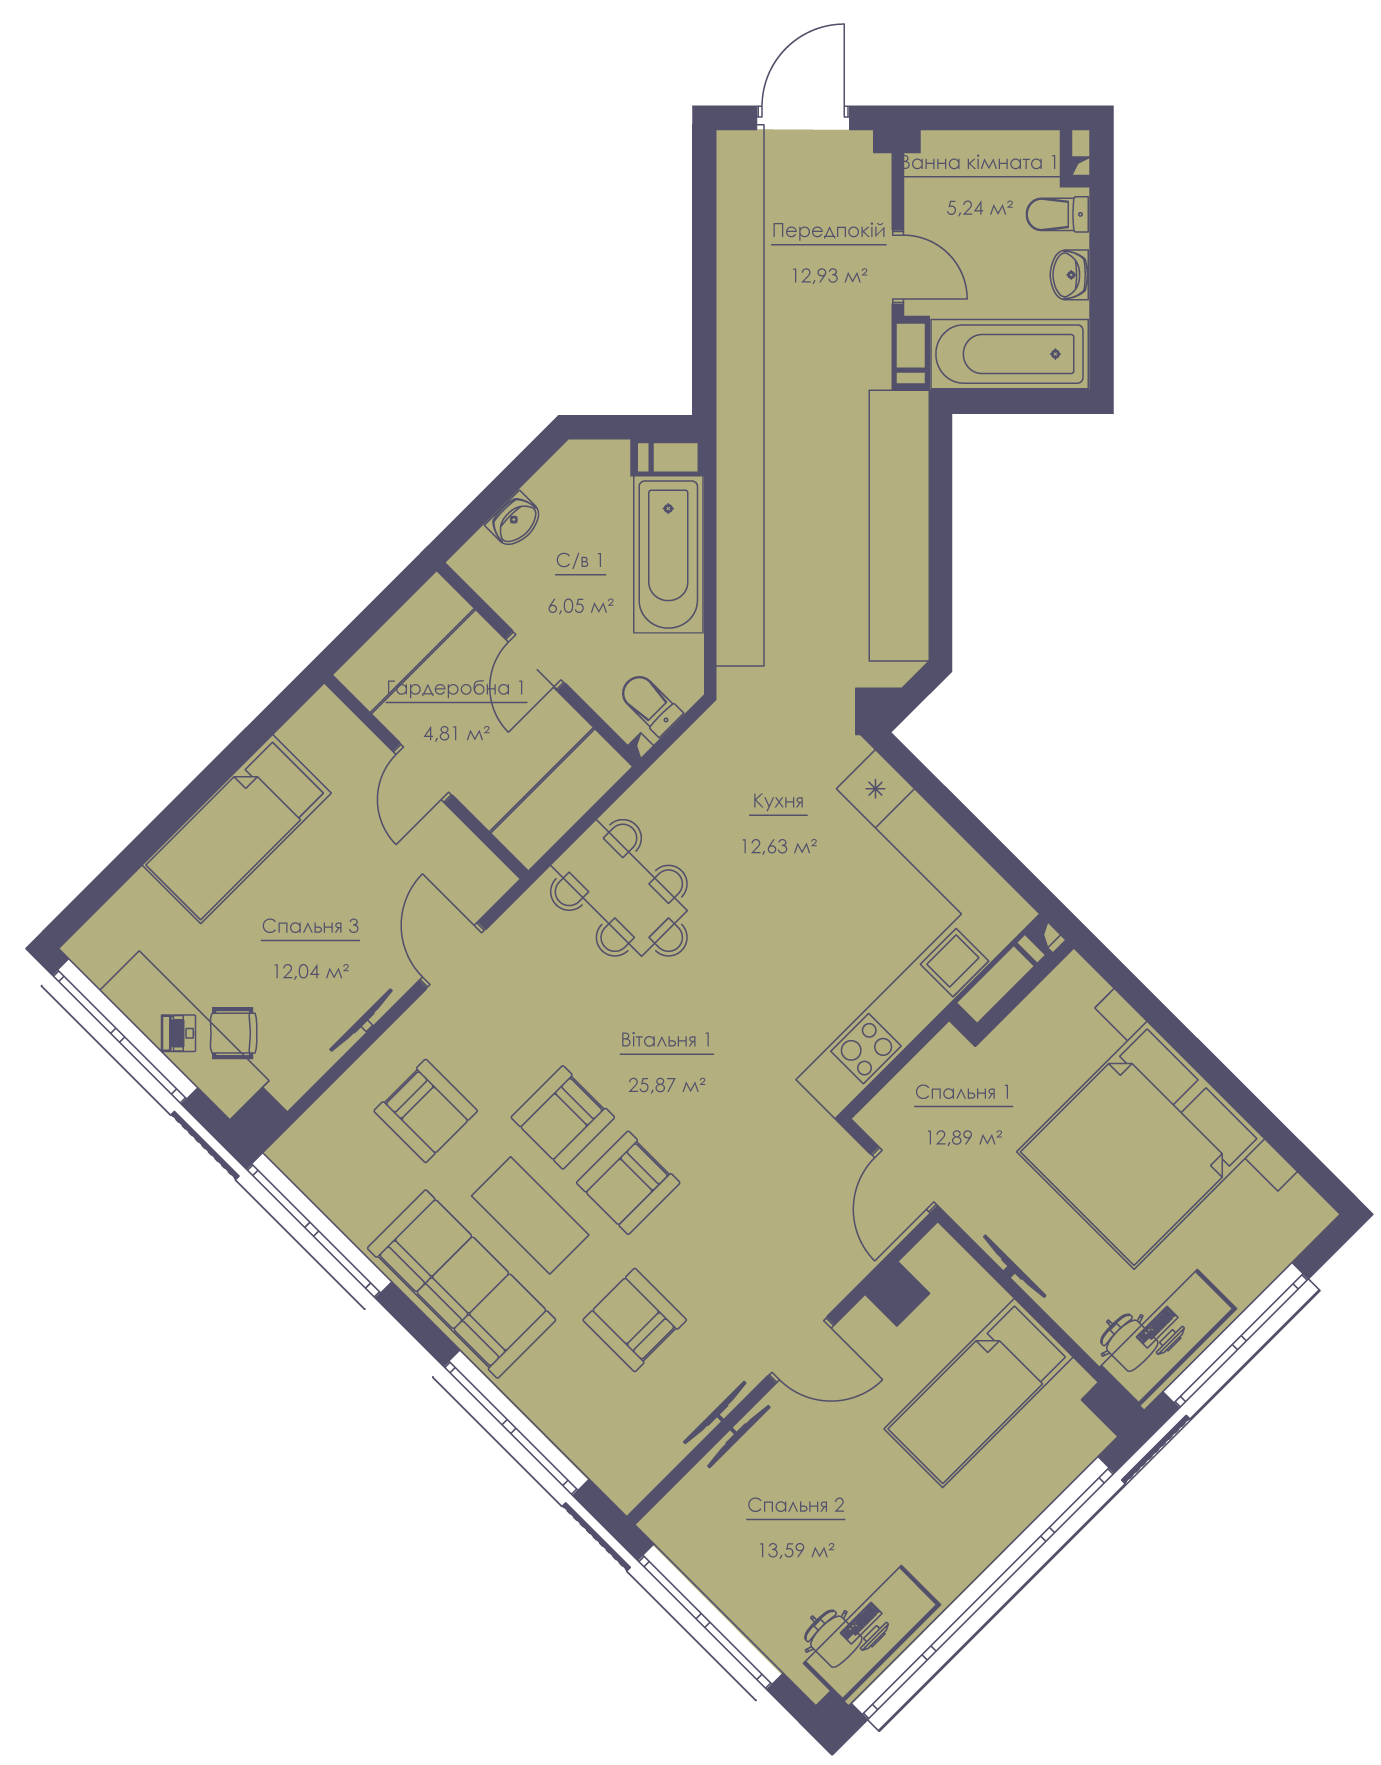 Apartment layout KV_136_3.4a_1_1_2-1